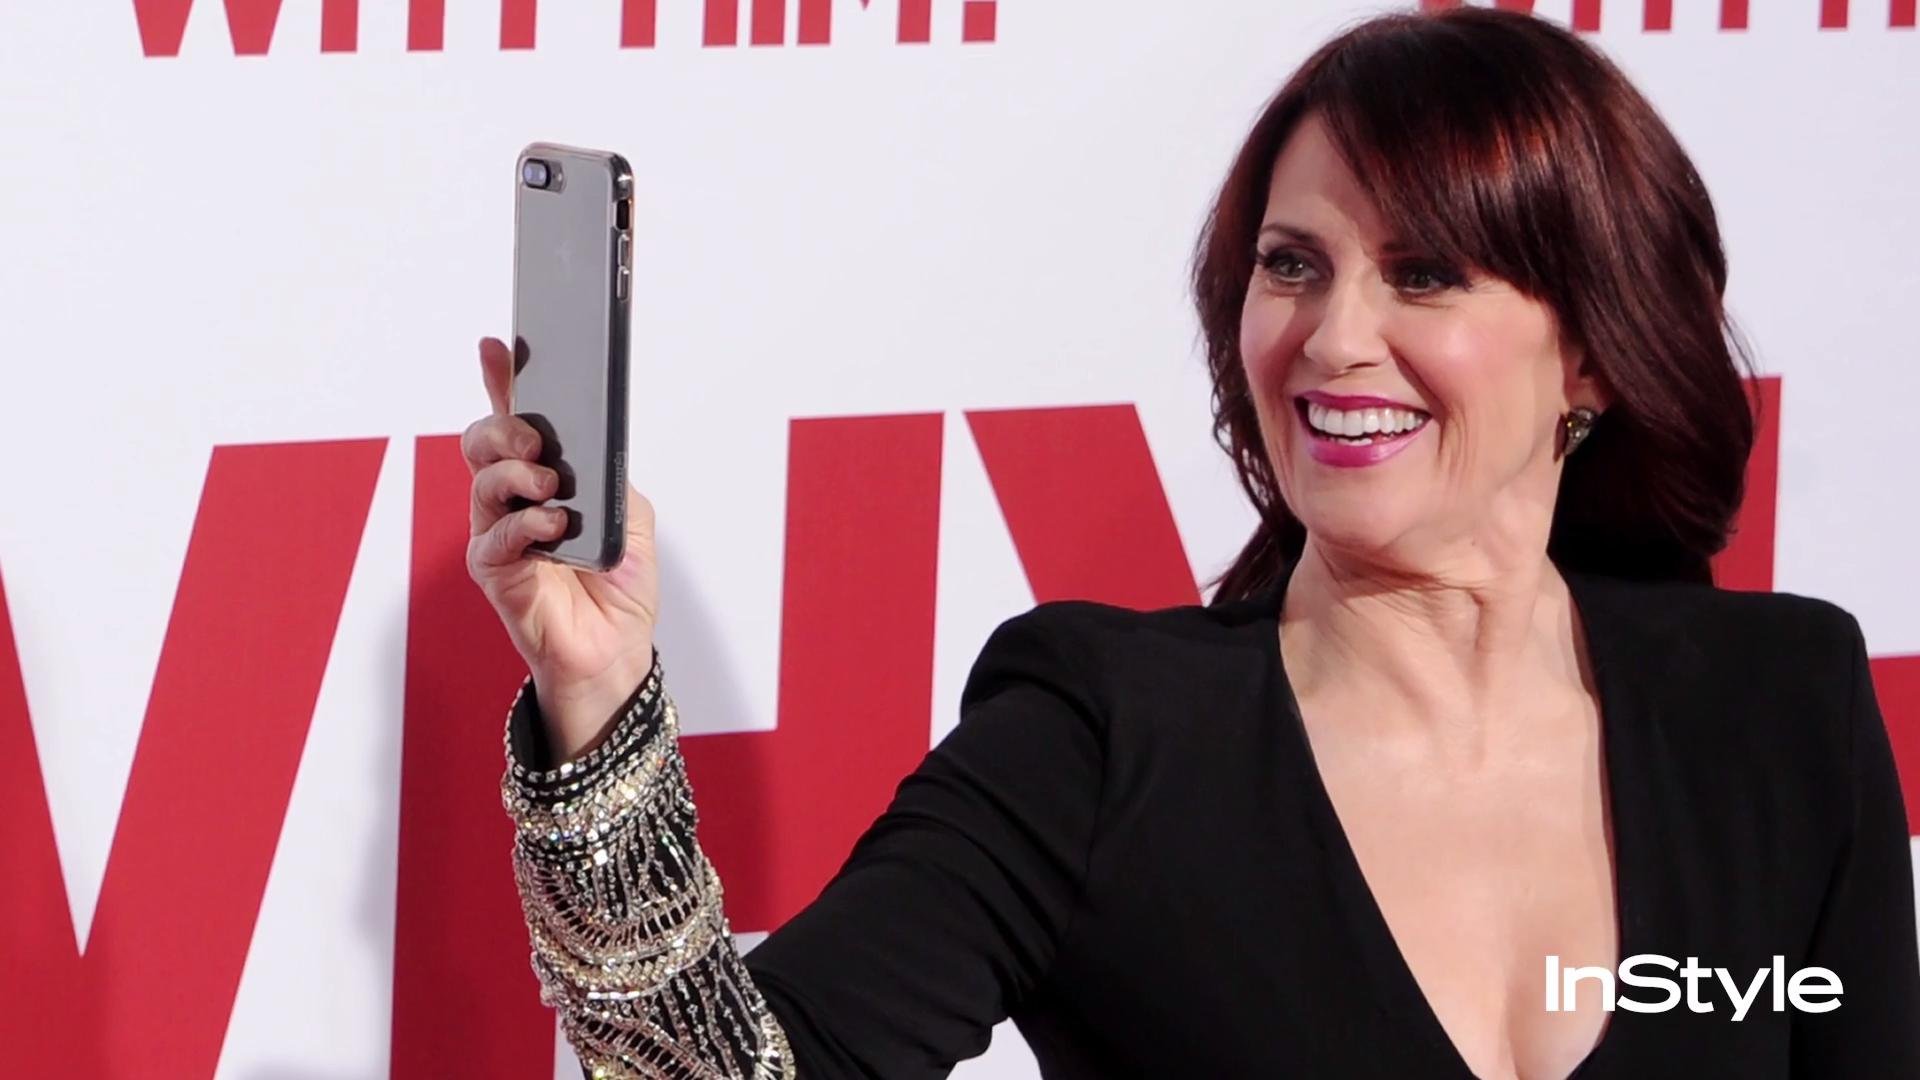 Megan Mullally Shares Her Red Carpet Style | InStyle.com